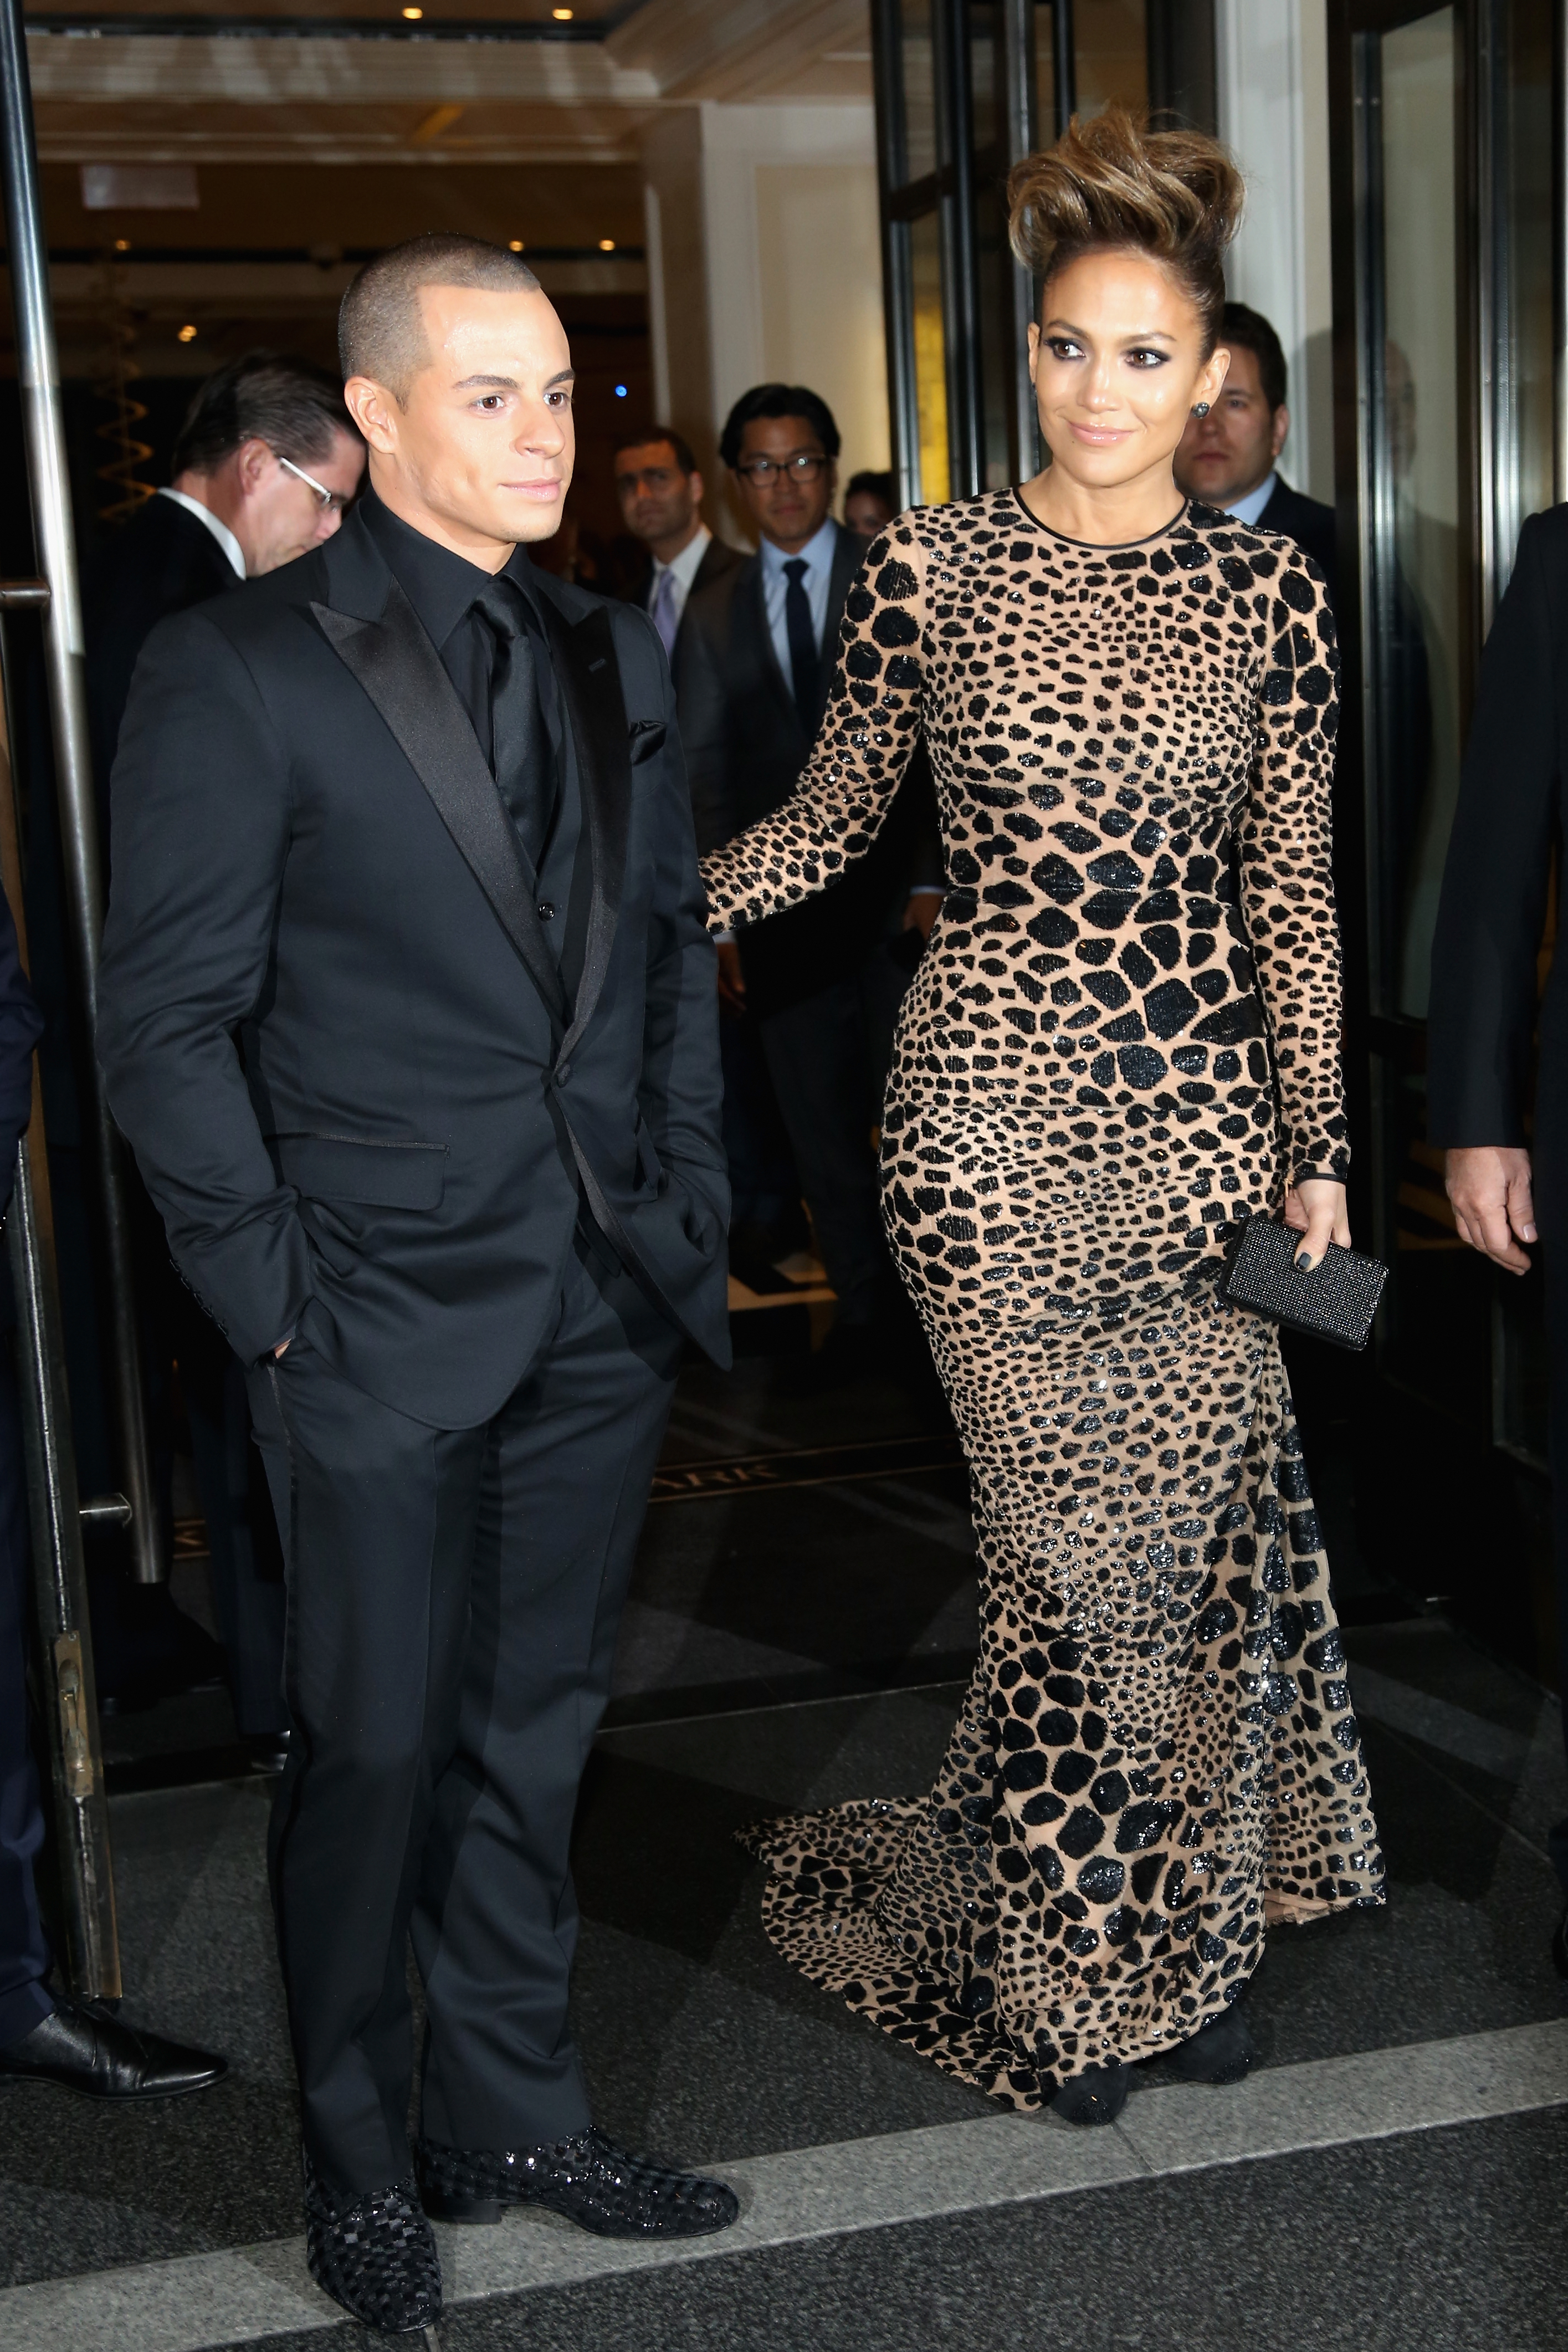 They're Off To The 2013 Met Gala: 17 Photos! Stars Depart NYC's Mark